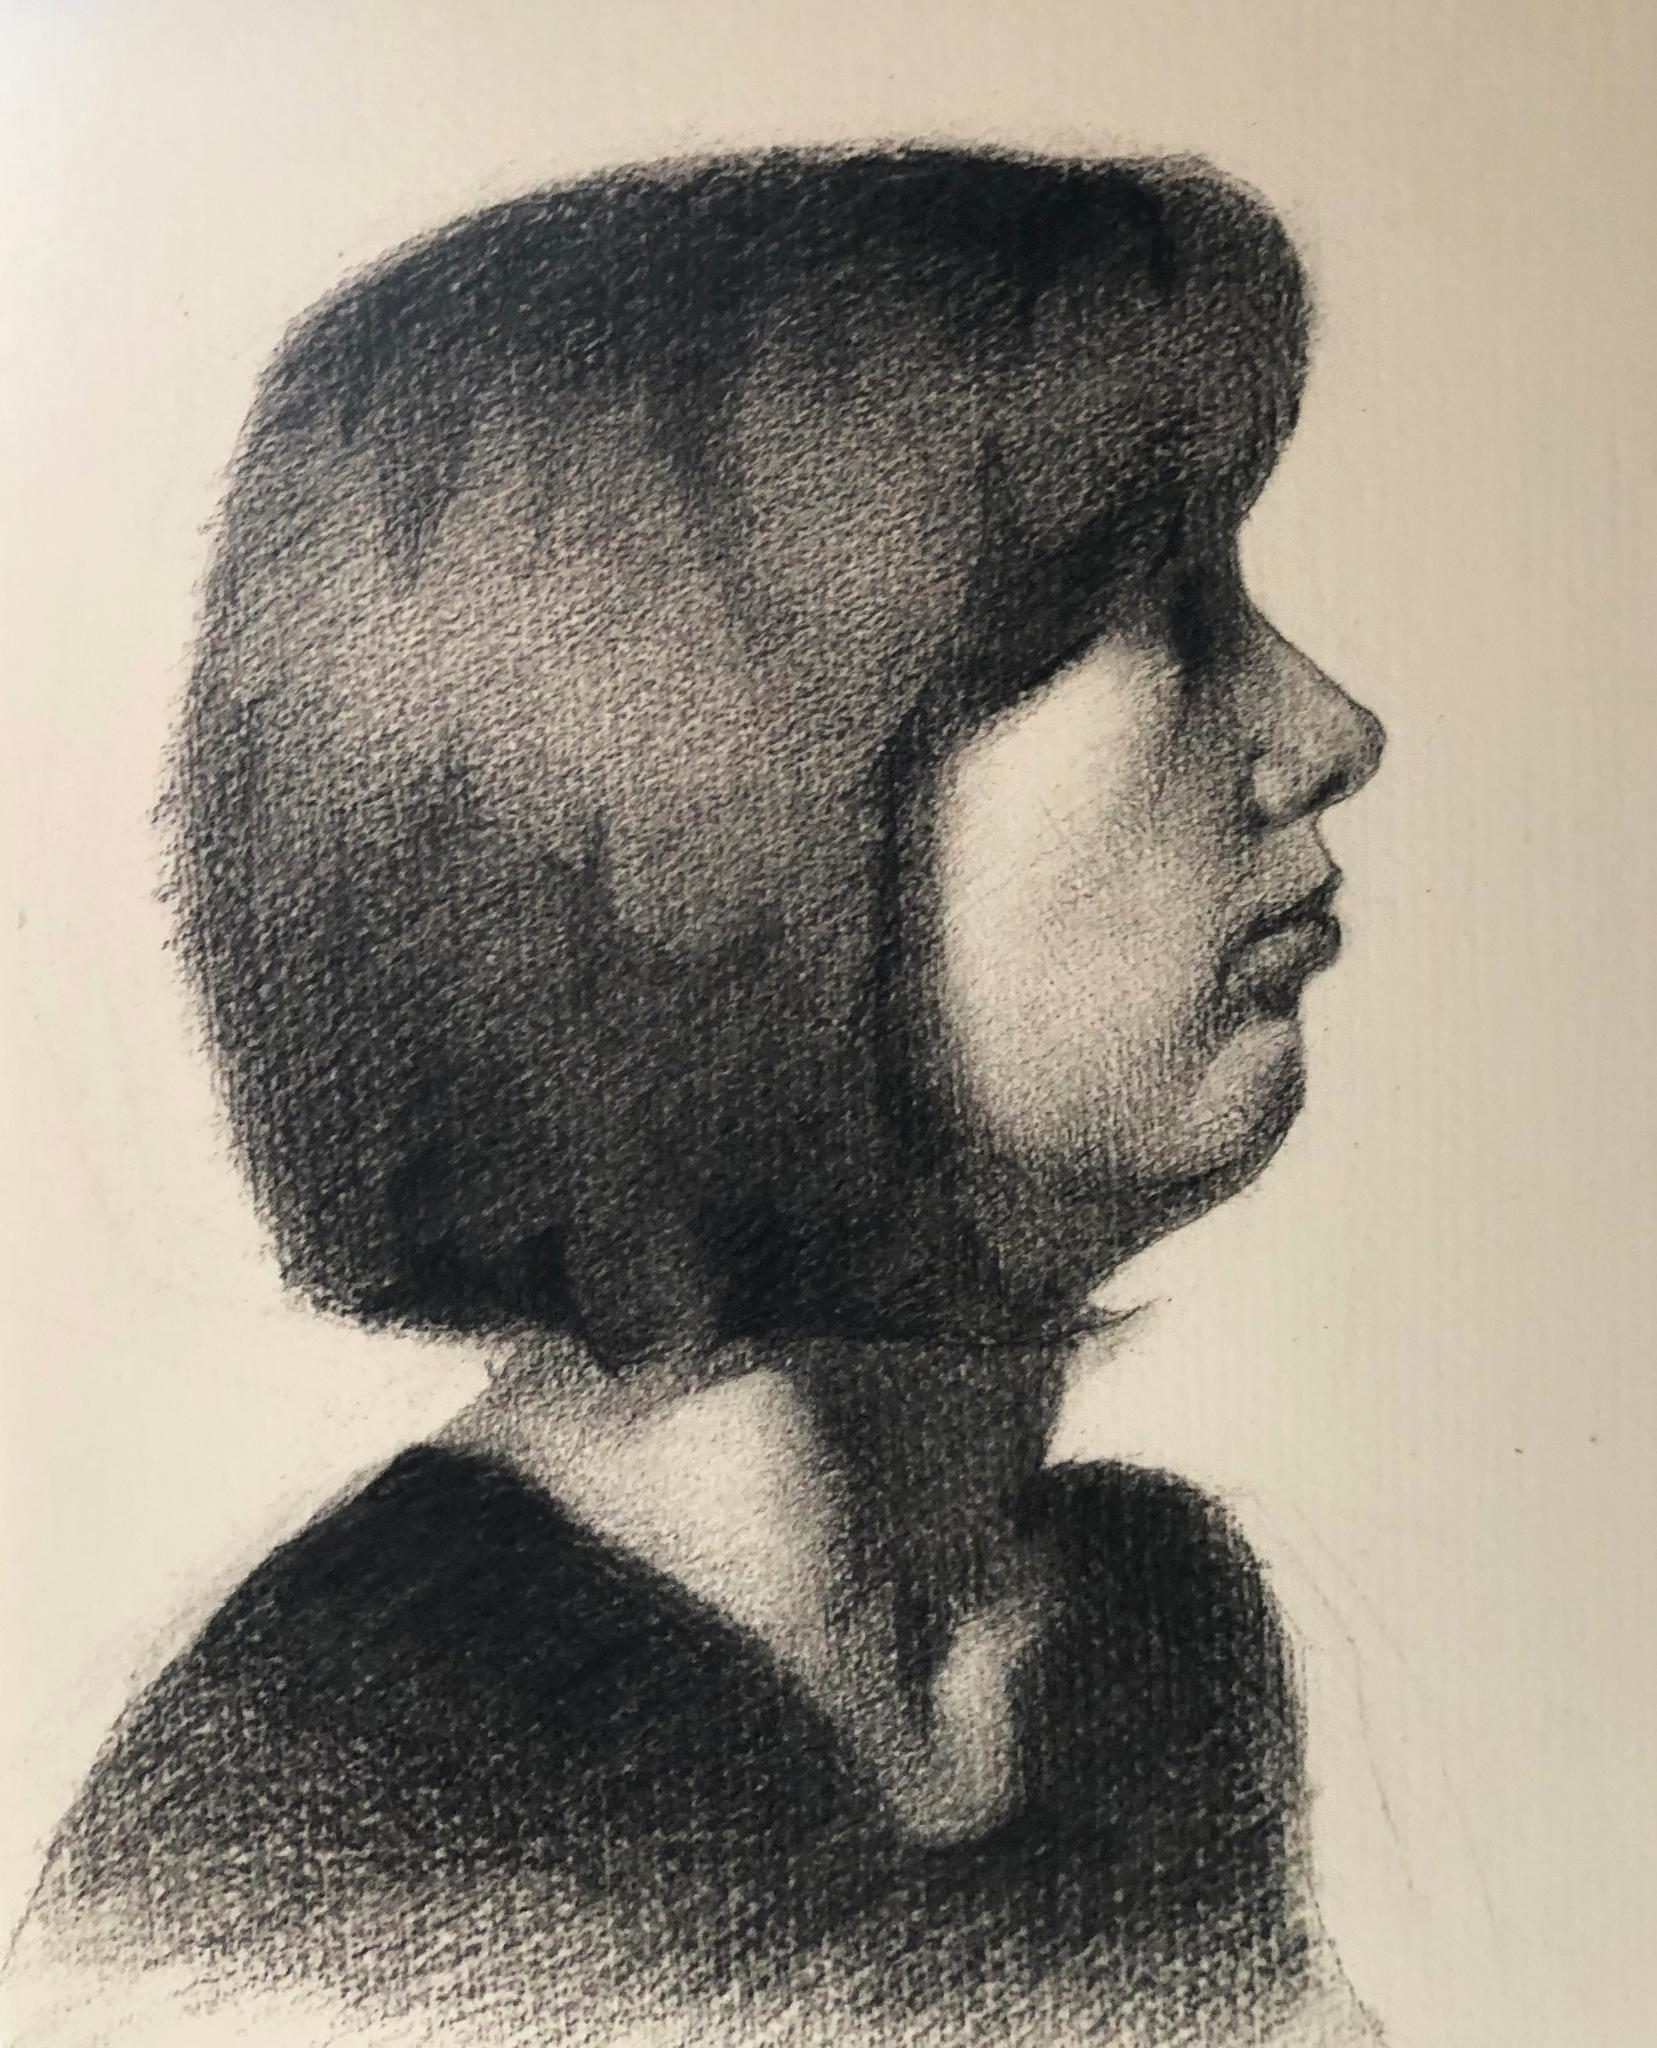 Charcoal self portrait of artist